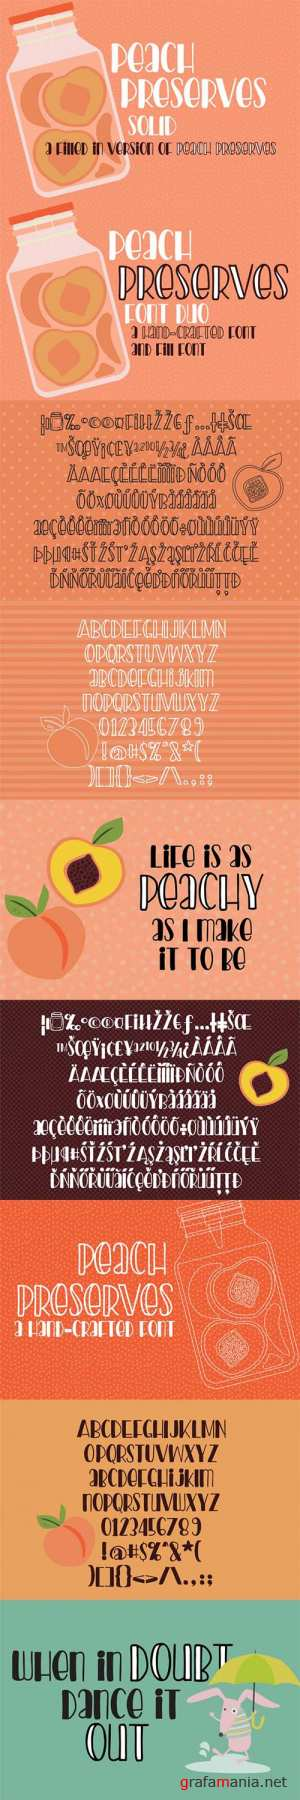 PN Peach Preserves Font Duo 3463672